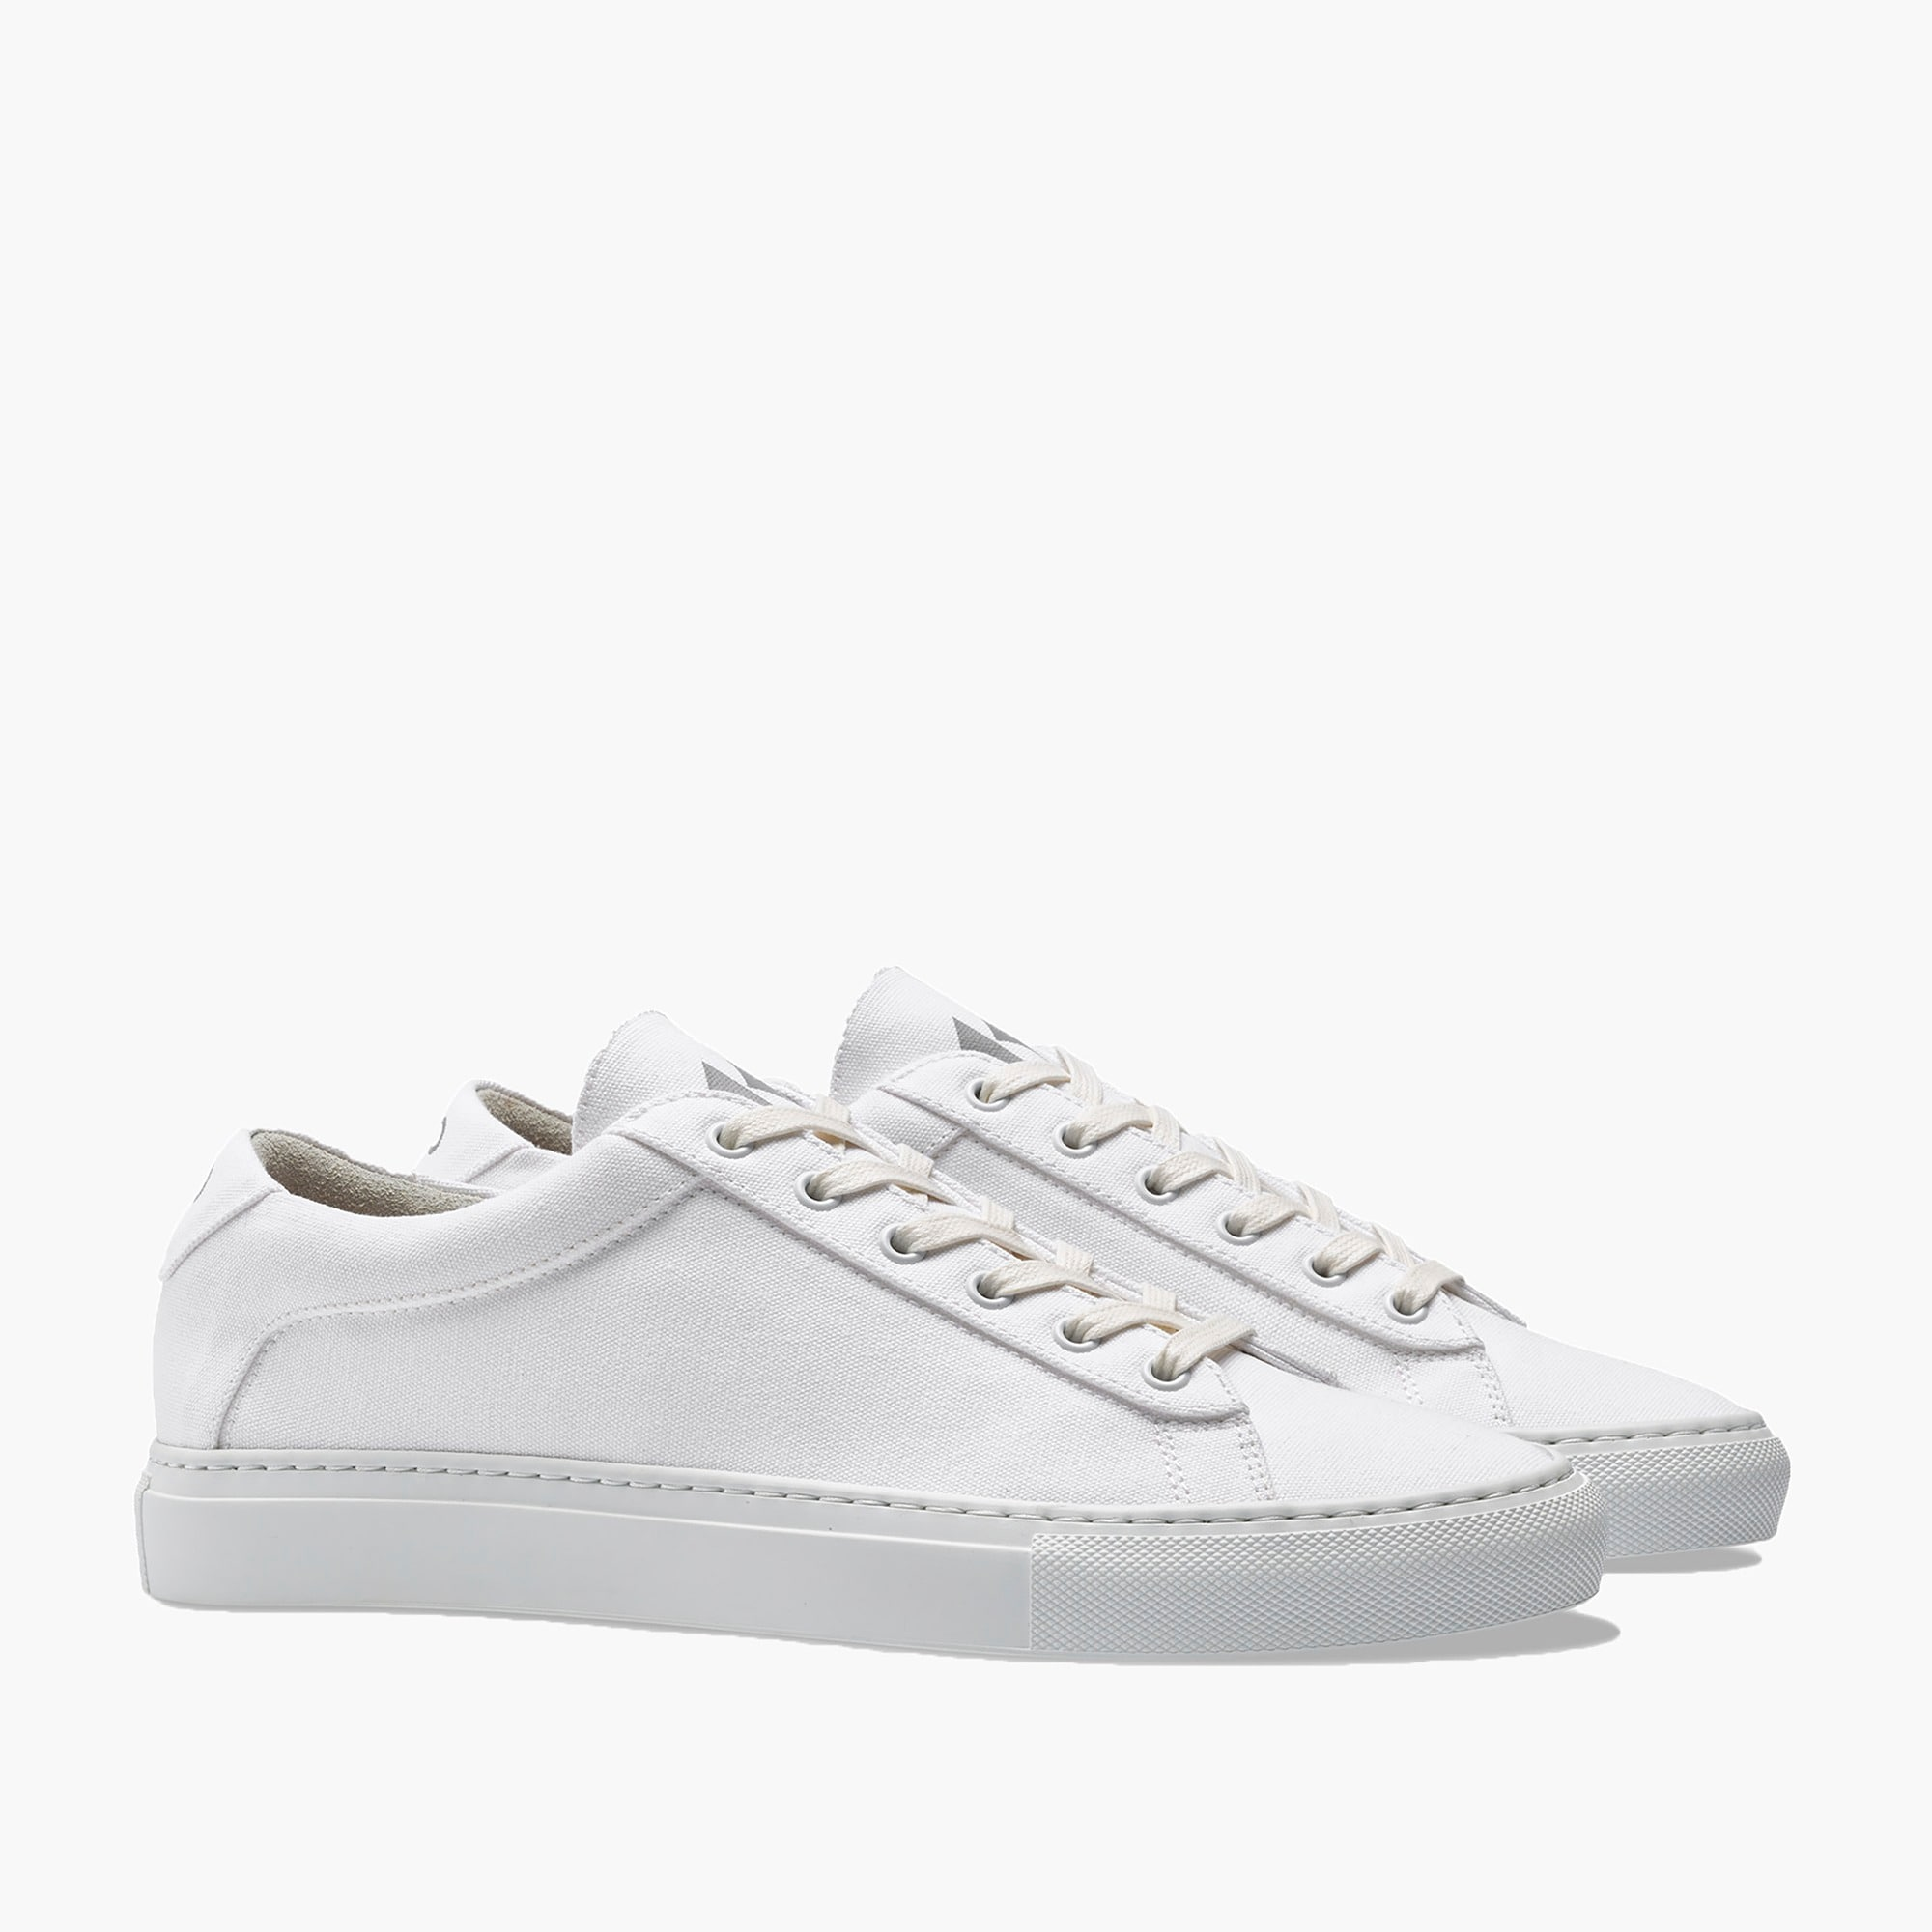 womens Unisex Koio Capri Bianco canvas sneakers